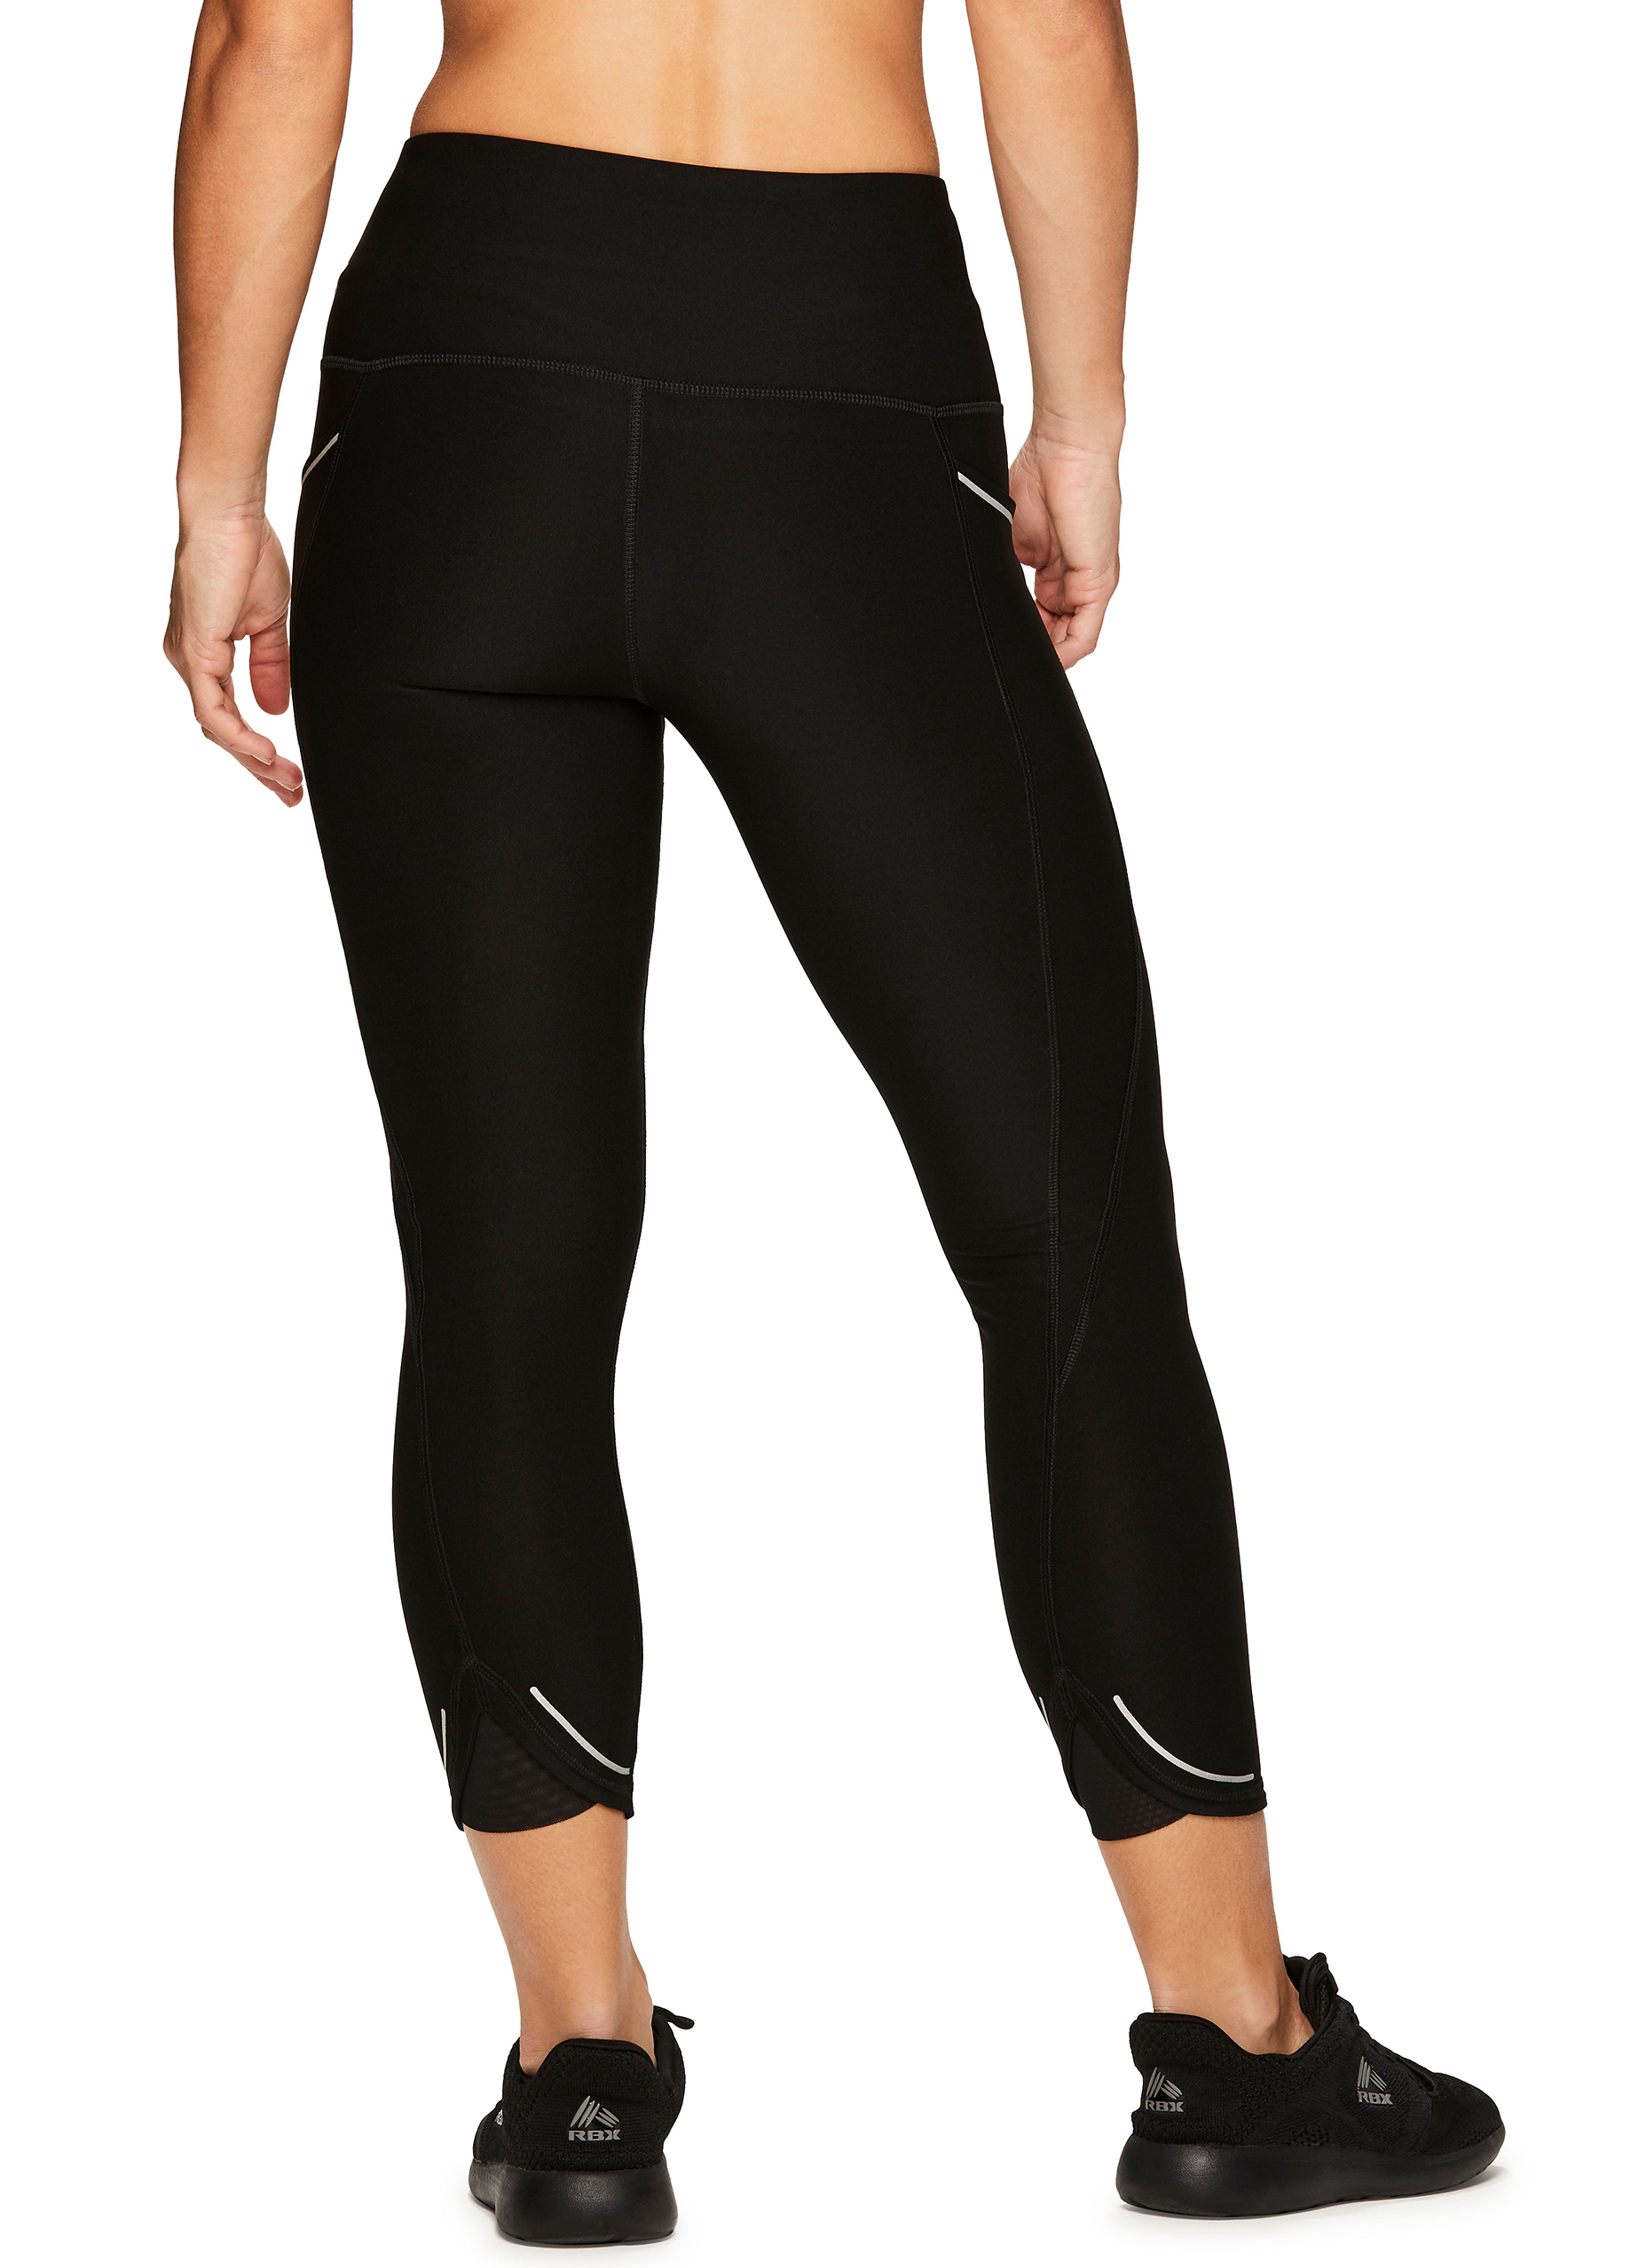 e6ba7bf5b41a1 RBX Active Women's Athletic Gym Workout Yoga Capri Length Legging ...